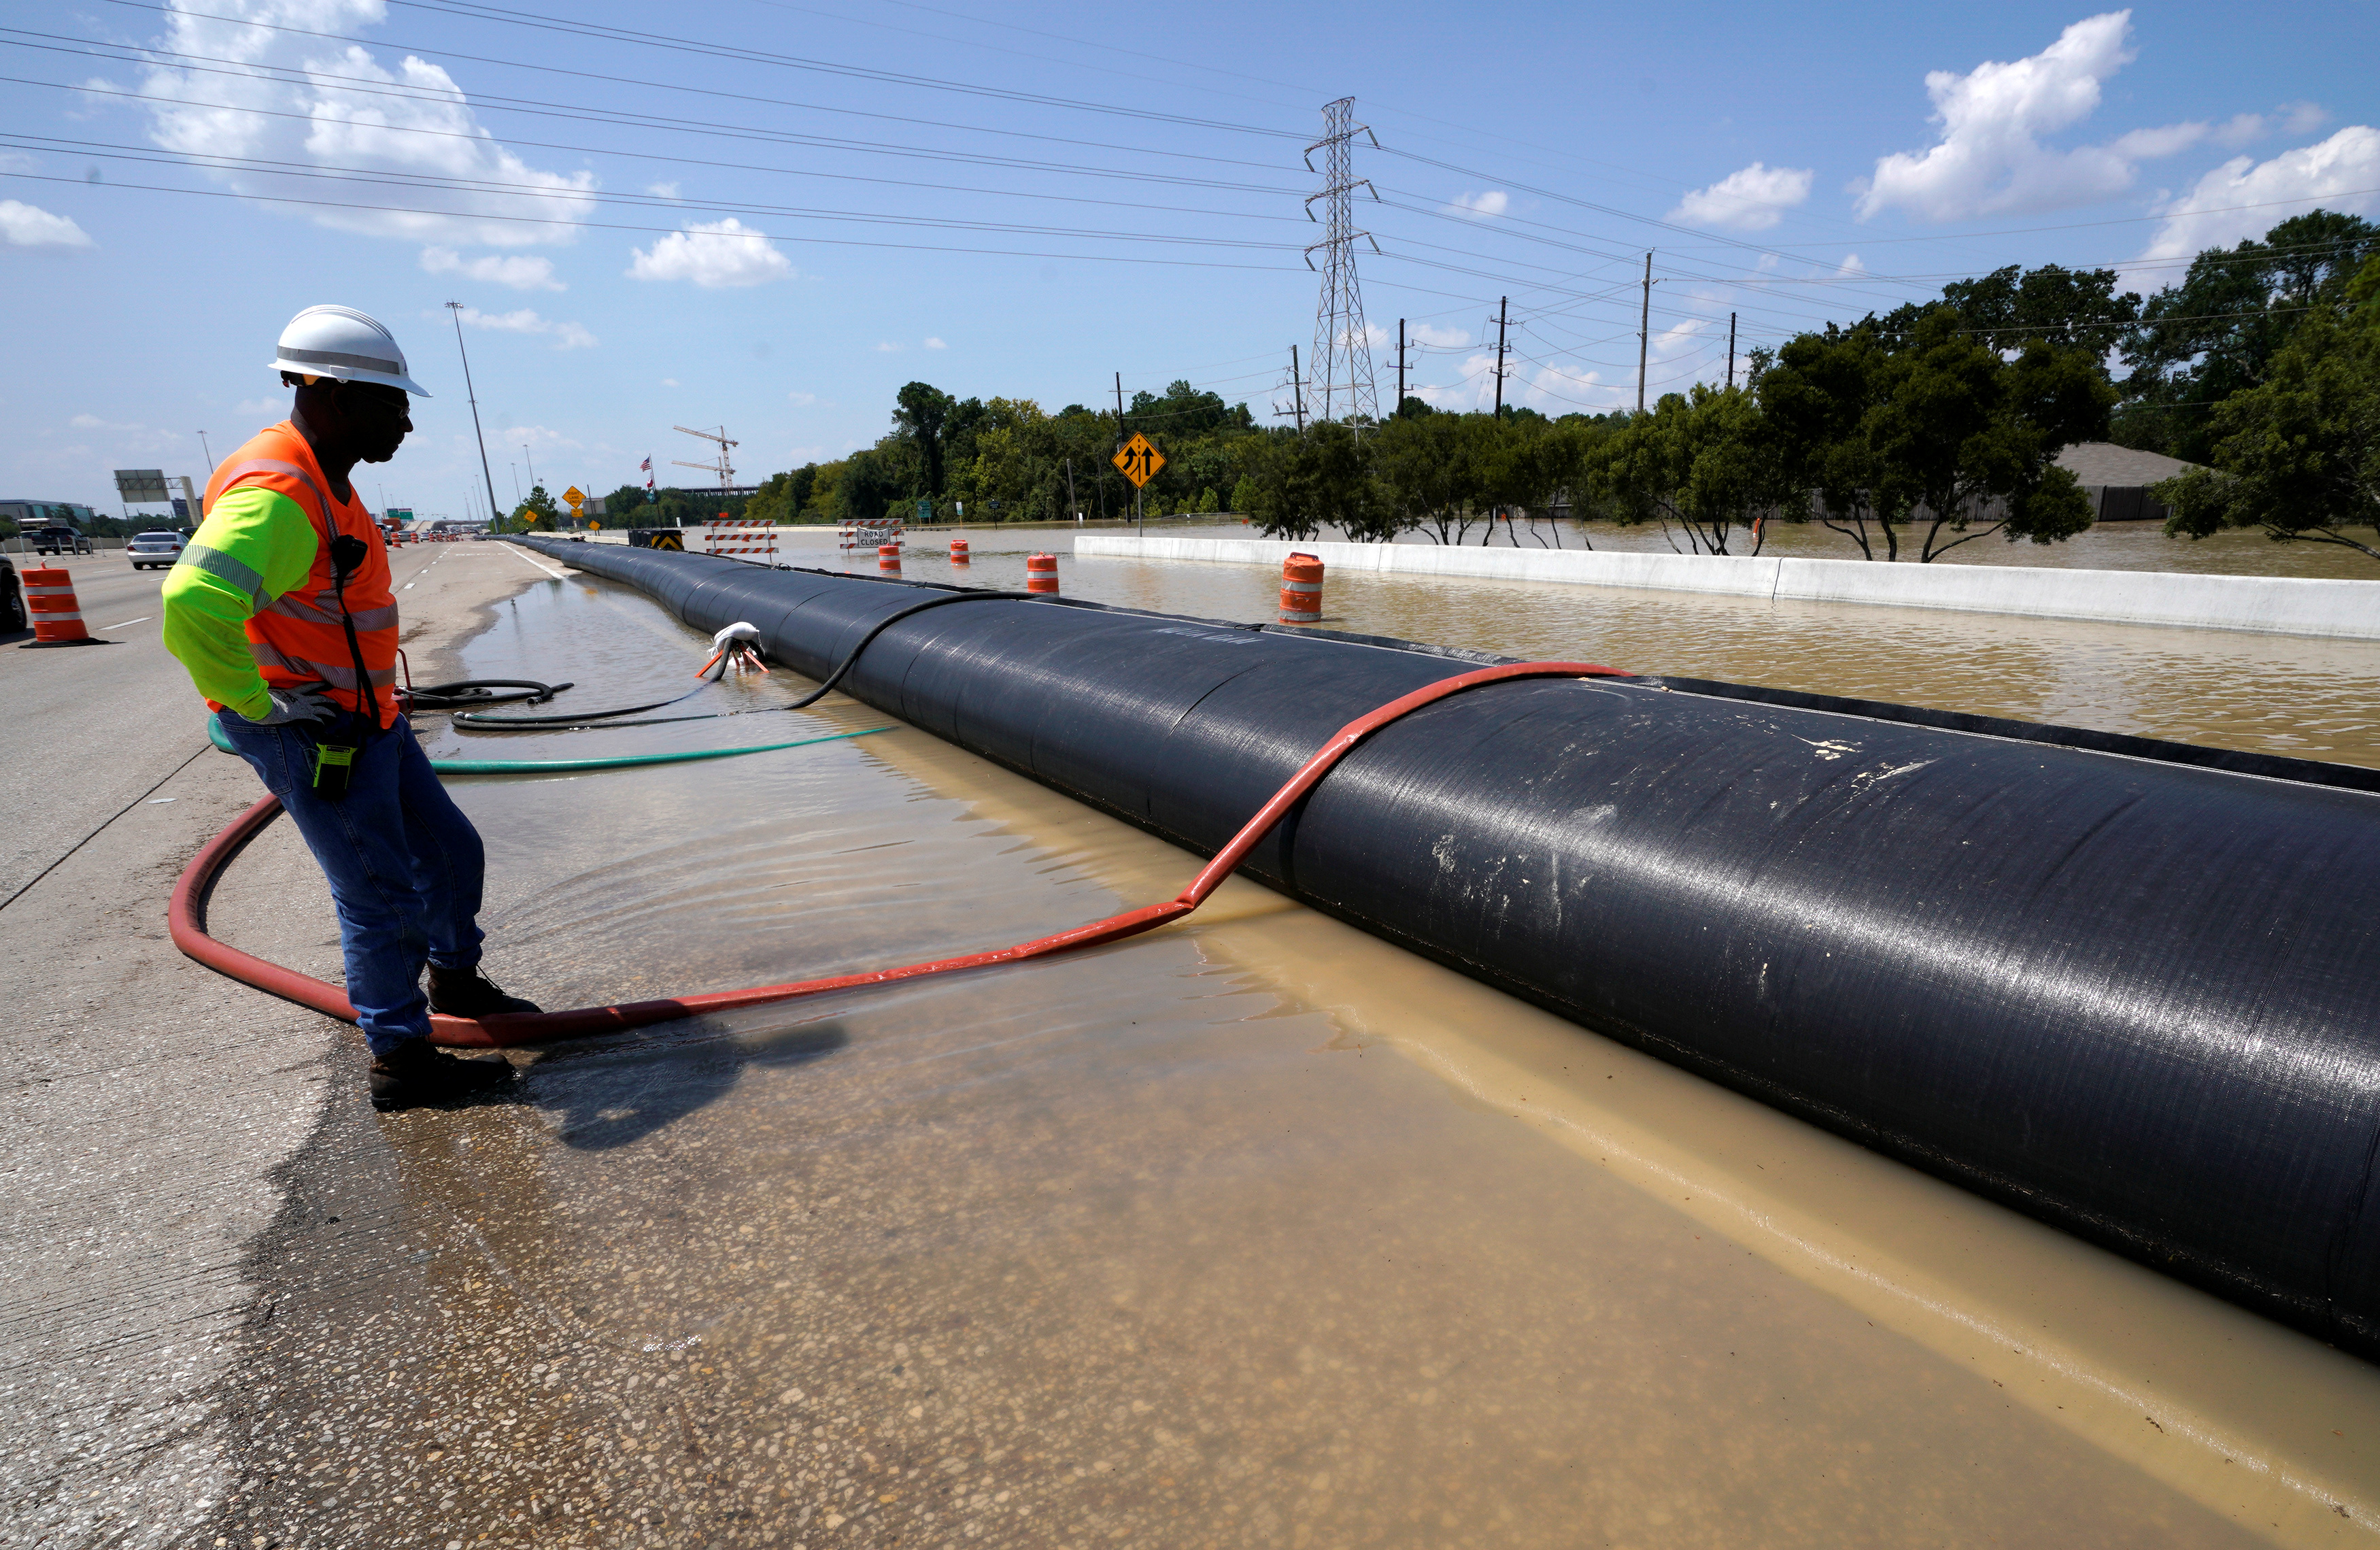 A Texas Department of Transportation worker monitors a temporary water filled dam keeping Harvey floodwaters from getting onto highway I-10 in Houston, Texas August 31, 2017.